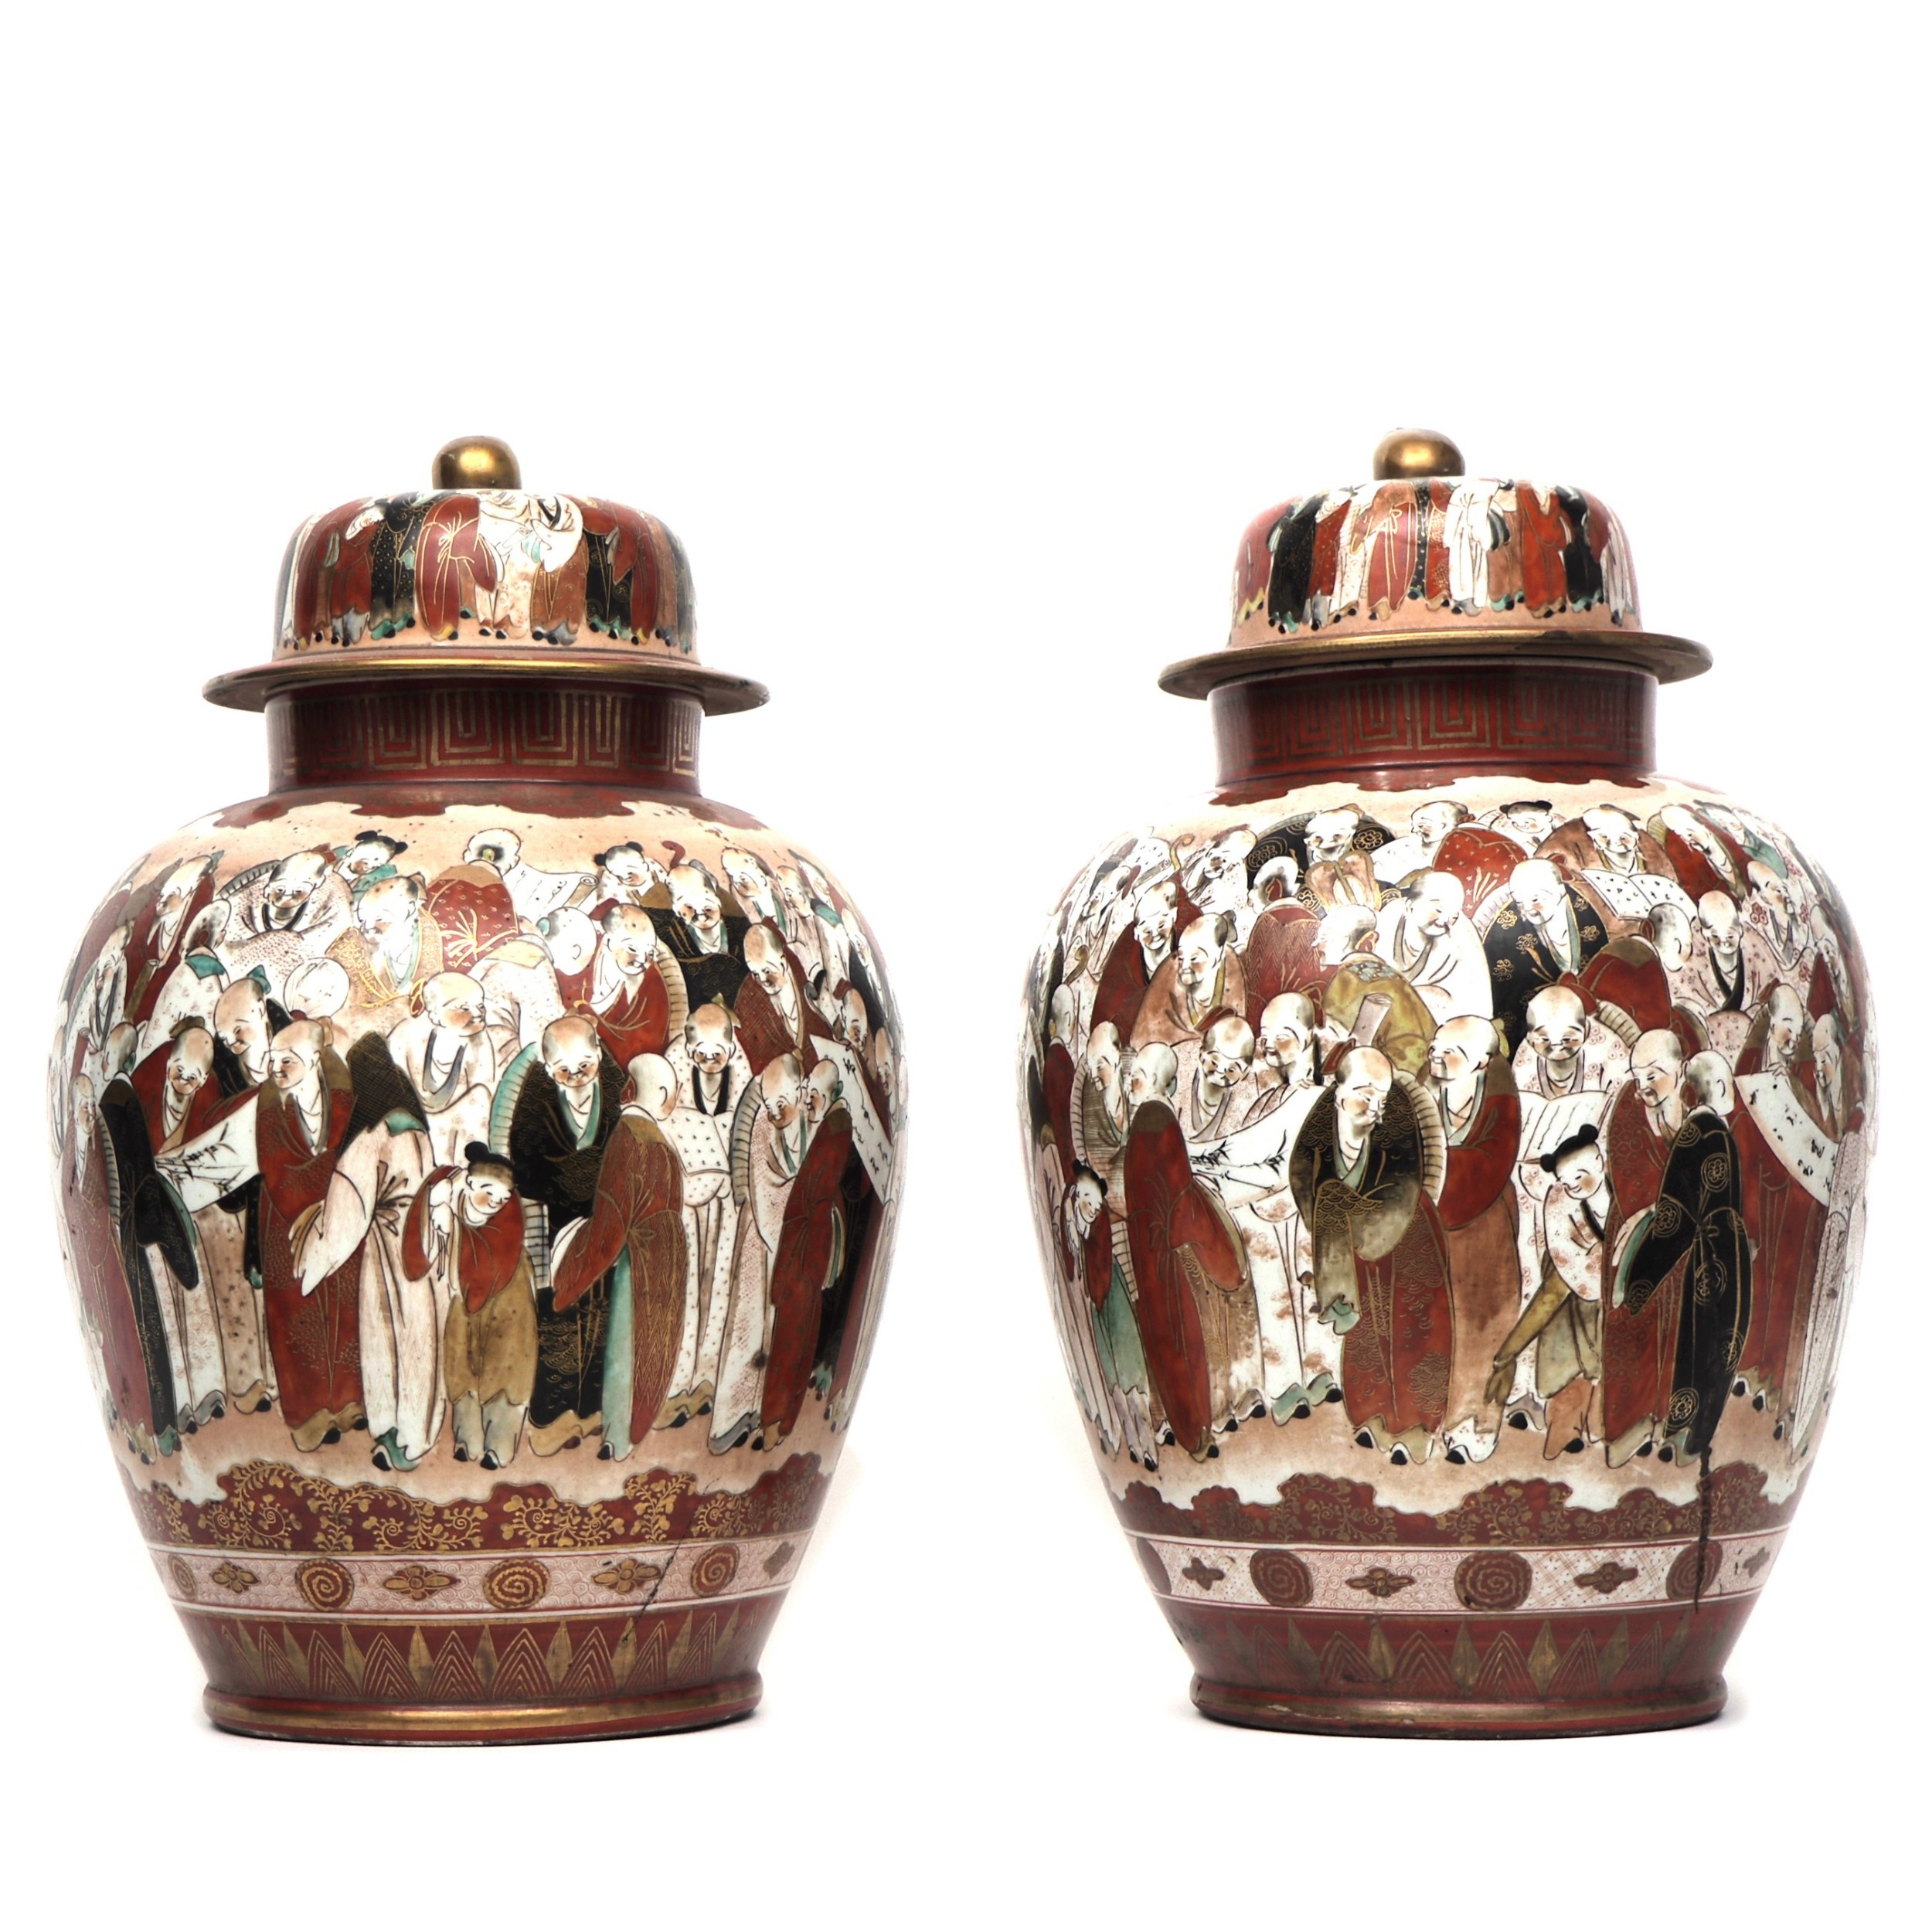 pair japanese kutani vases decorated with crowds of people